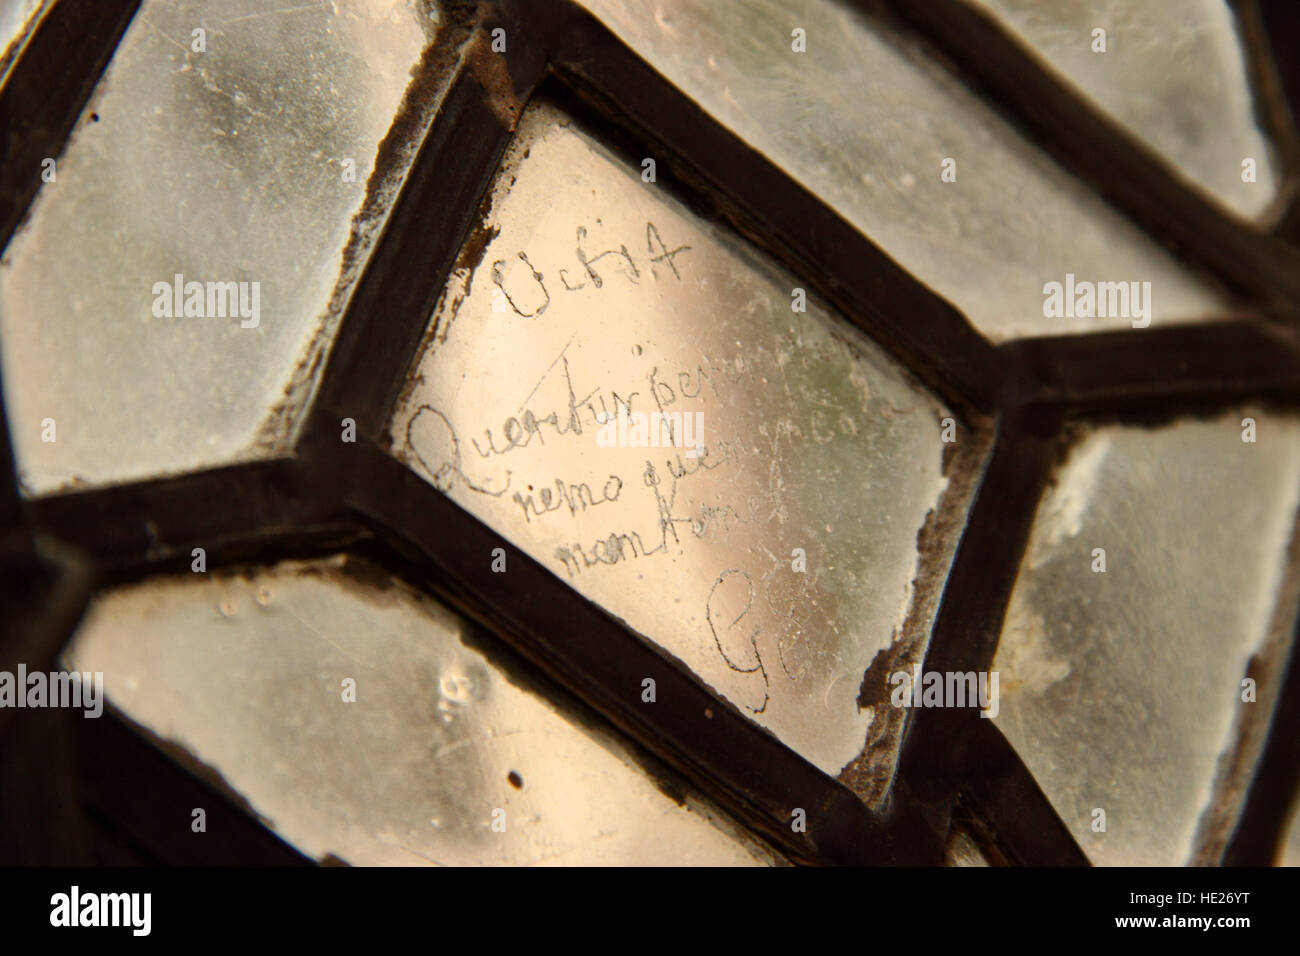 Engraving on a leaded window of the medieval Great Chamber in New Hall Manor, now New Hall Hotel, Sutton Coldfield - Stock Image